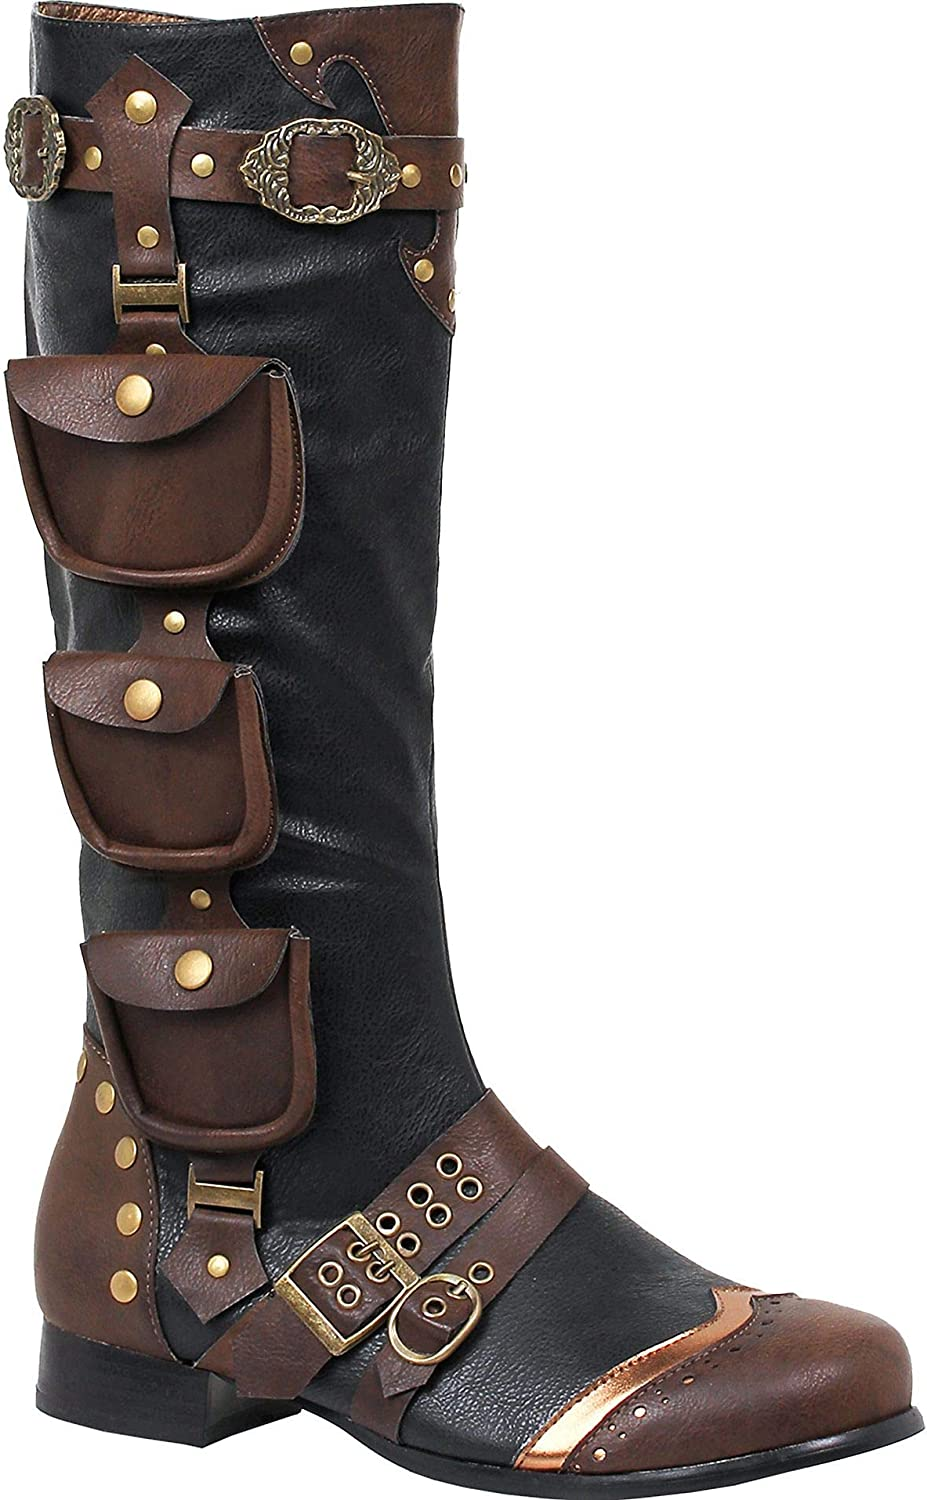 Ellie Shoes Men's 121-Amos Steampunk Boots - Victorian Costume Shoes